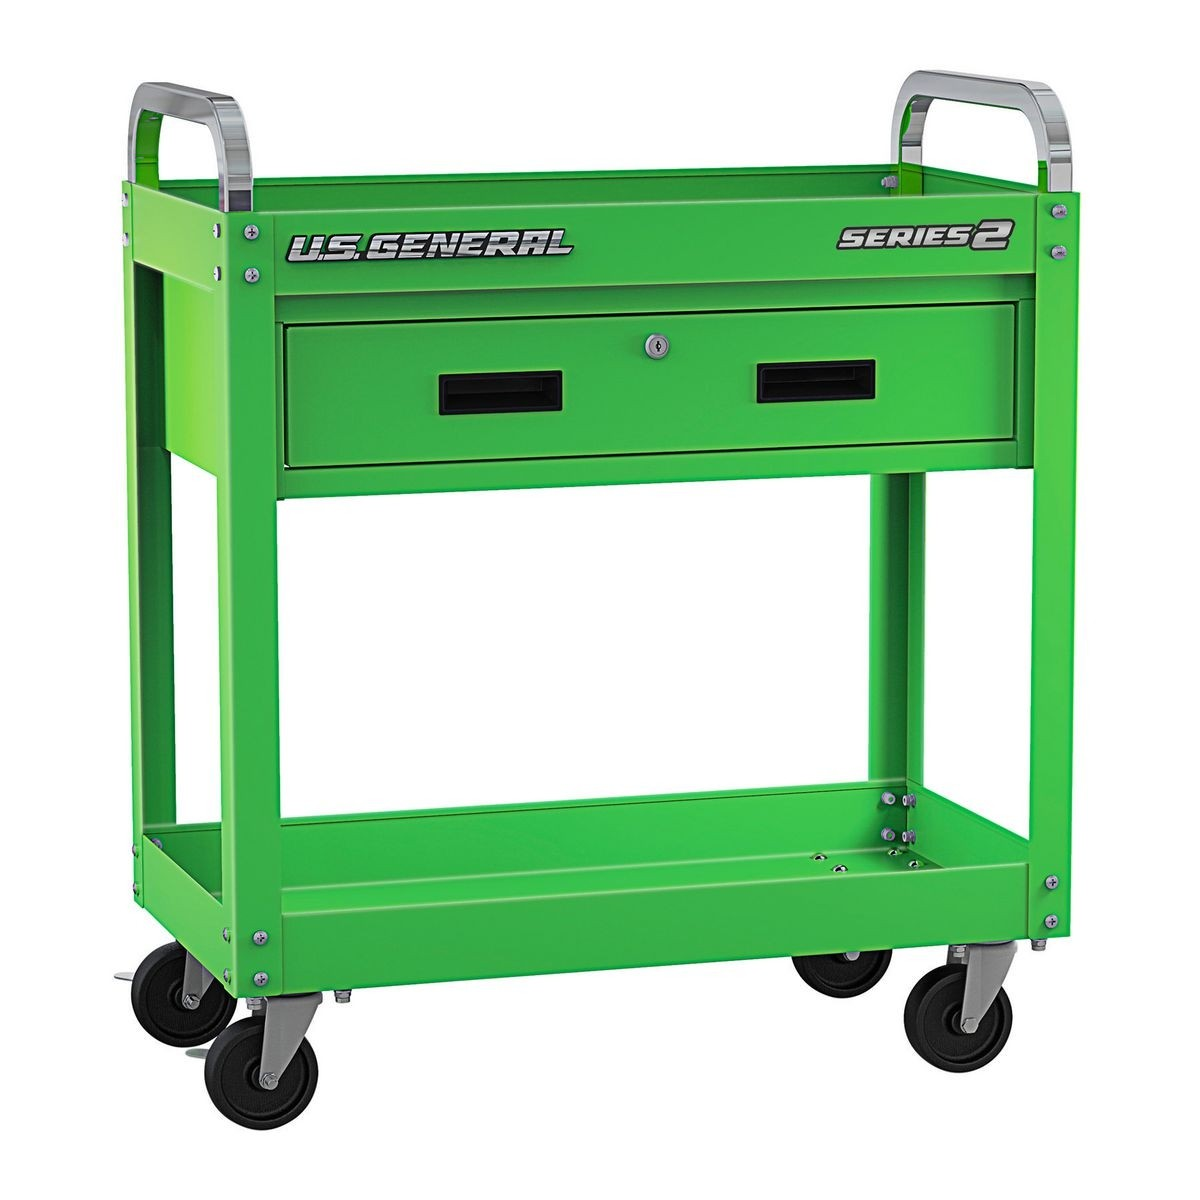 U.S. GENERAL 30 In. Service Cart With Drawer – Green – Item 56607